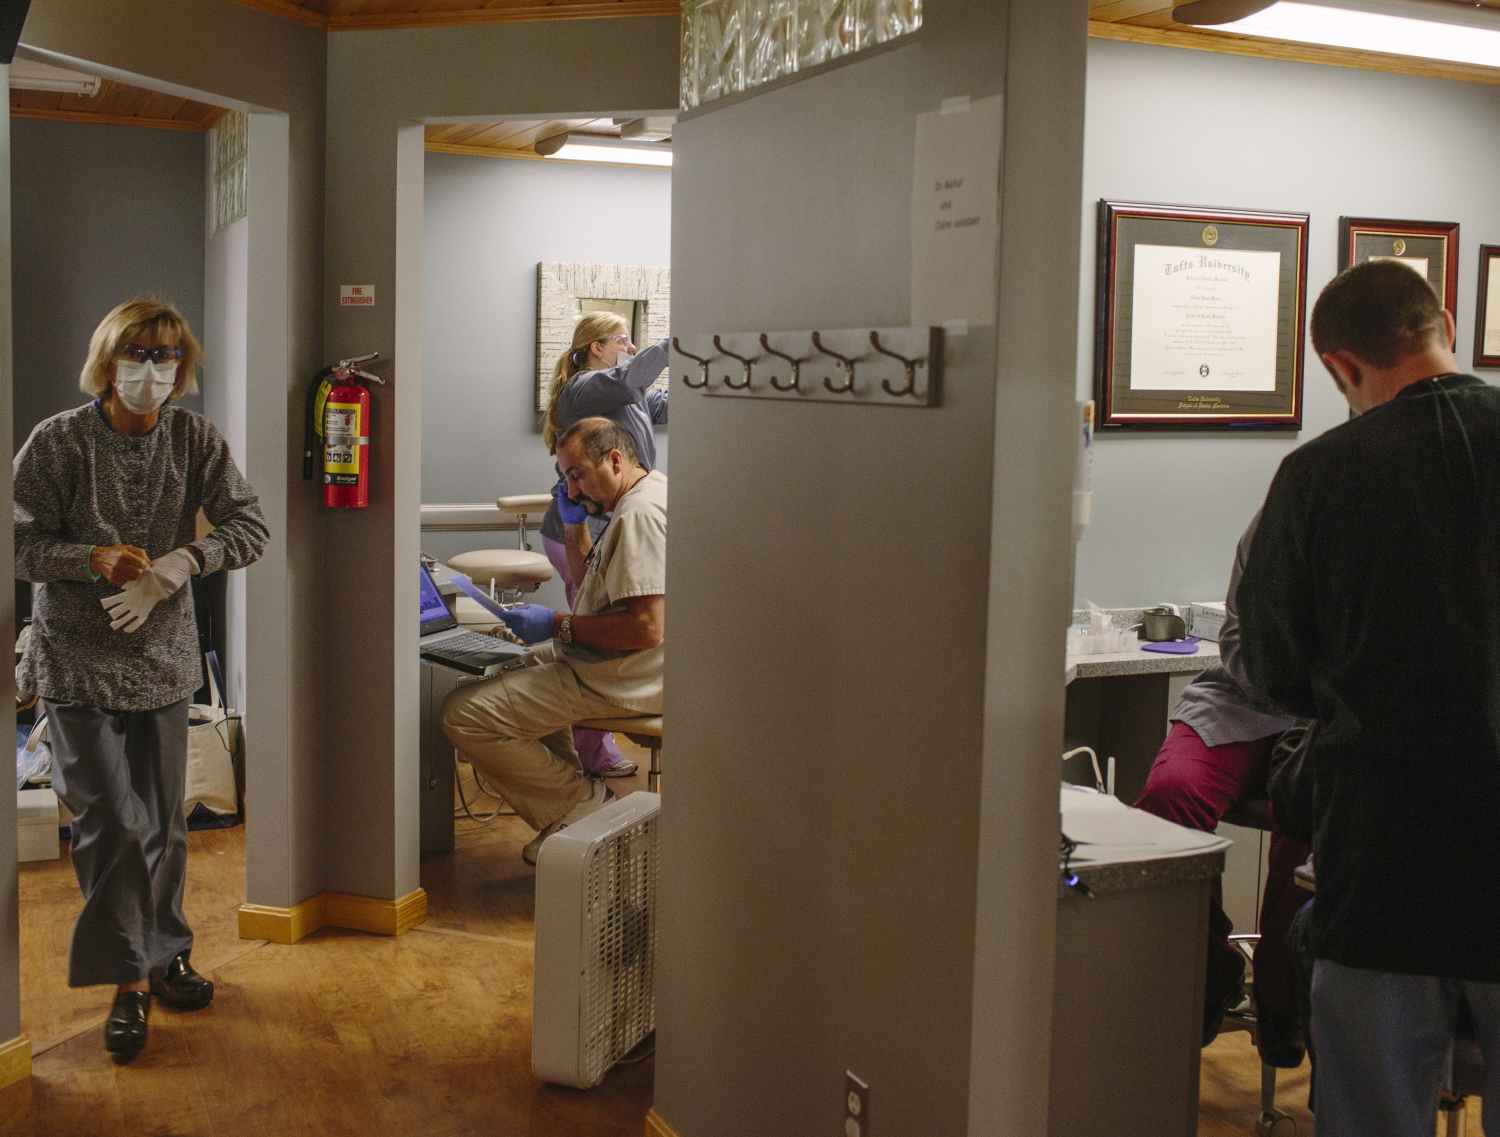 Dentists and dental assistants work on patients' teeth during the Dentists Who Care for ME clinic, which provides free dental health care for patients in Maine who cannot afford it, at the Dunstan Dental Center in Scarborough on Friday.